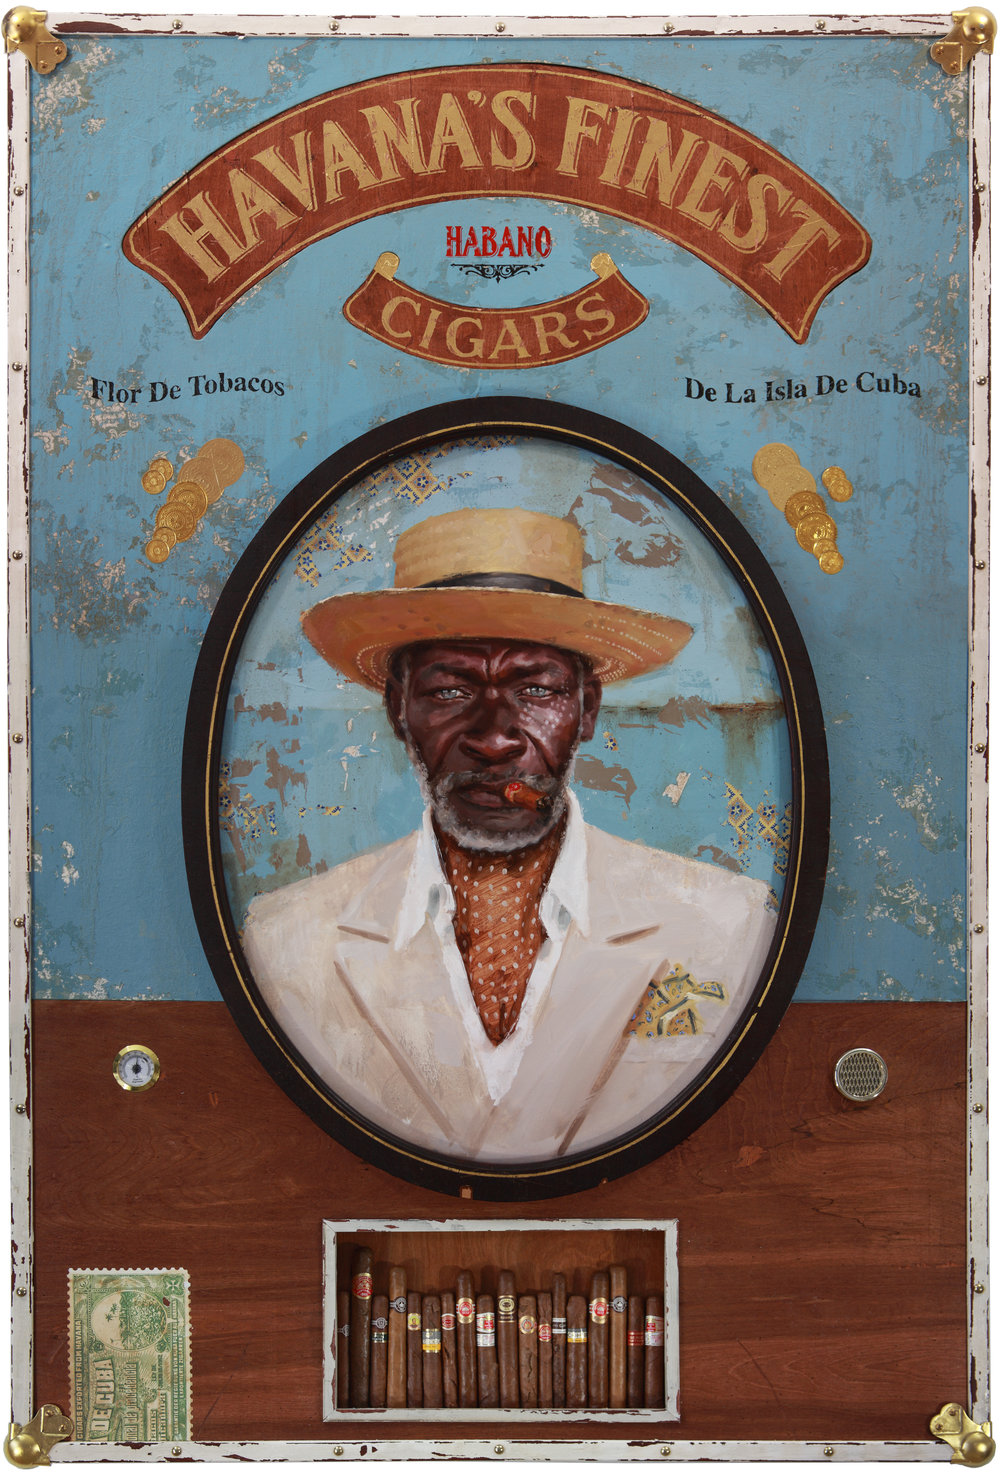 Jules Arthur  |  Havana's Finest  |  Portrait painted in oil on wood panel. Constructed wooden box frame, fabric, leather, 23k gold leaf lettering, brass hardware, authentic humidor, cigars purchased in Havana, Cuba  |  60 x 41 x 4 inches or  152 ½ x 104 x 10 cm